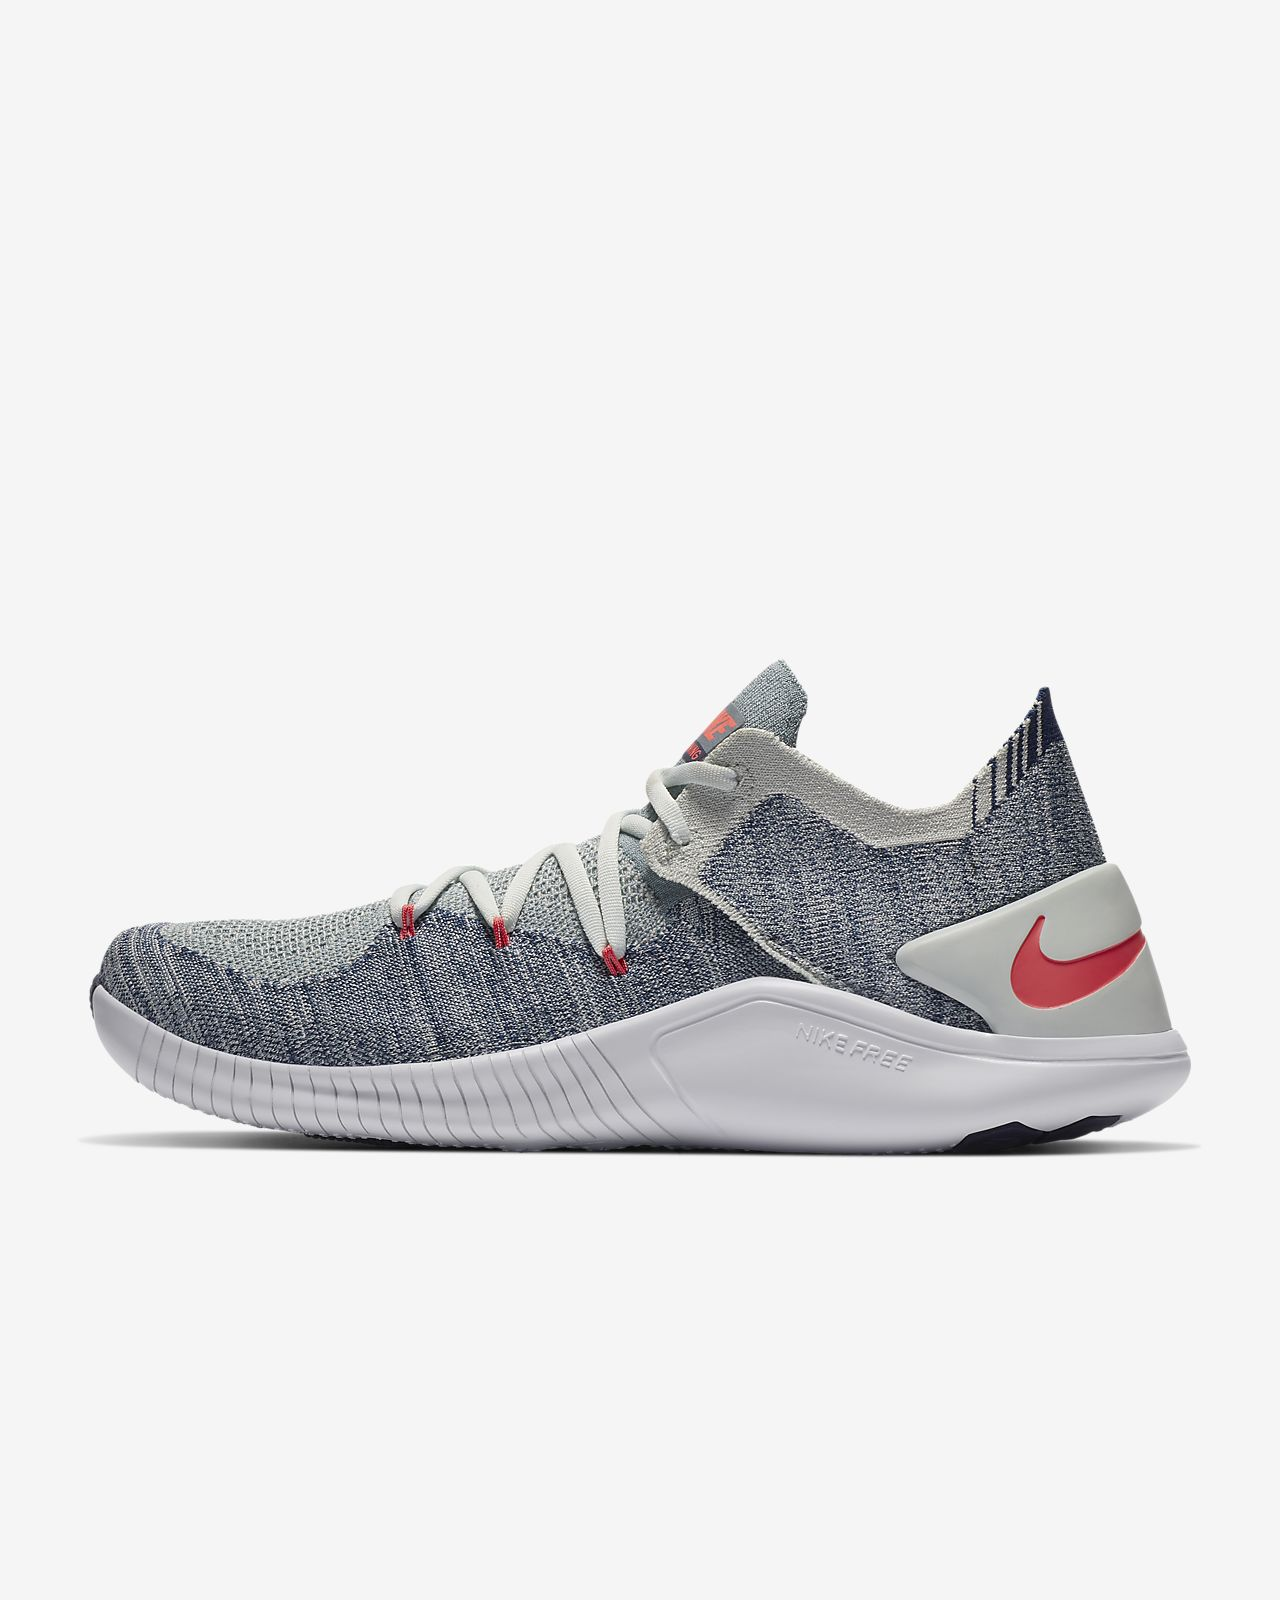 lower price with lowest discount sale uk Nike Free TR Flyknit 3 Women's Gym/HIIT/Cross Training Shoe